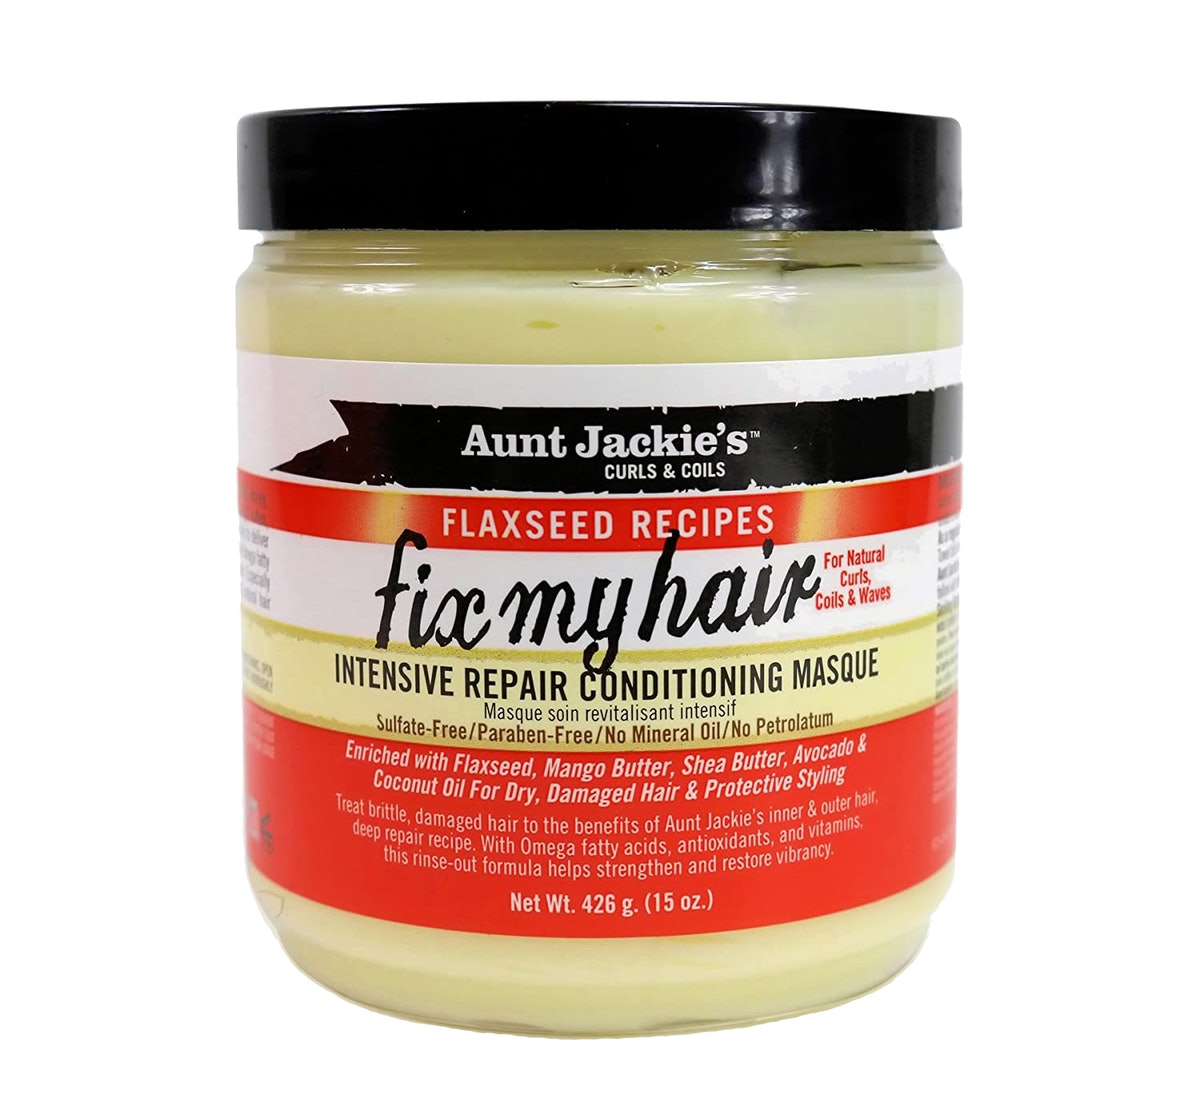 Aunt Jackie's Flaxseed Recipes Fix My Hair, Intensive Repair Conditioning Masque